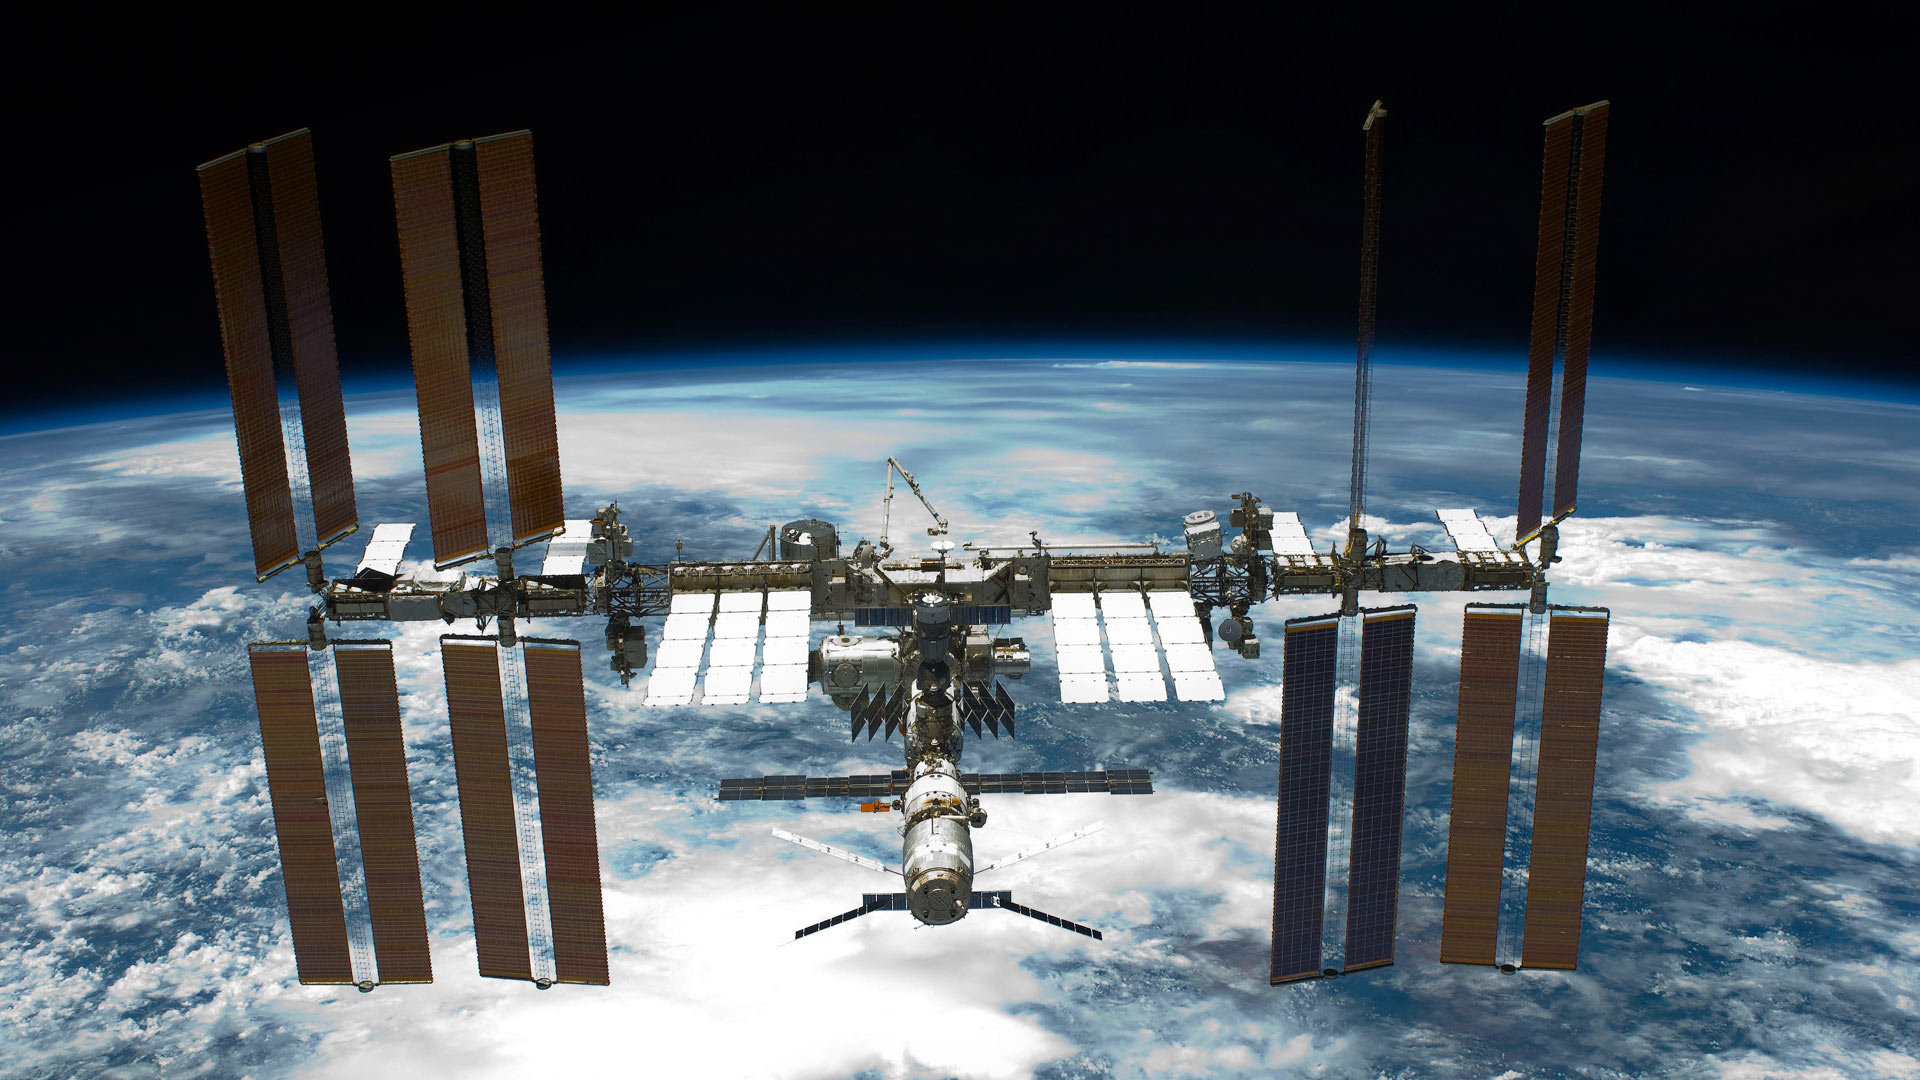 The International Space Station seen from the space shuttle Endeavour (© NASA/Alamy)